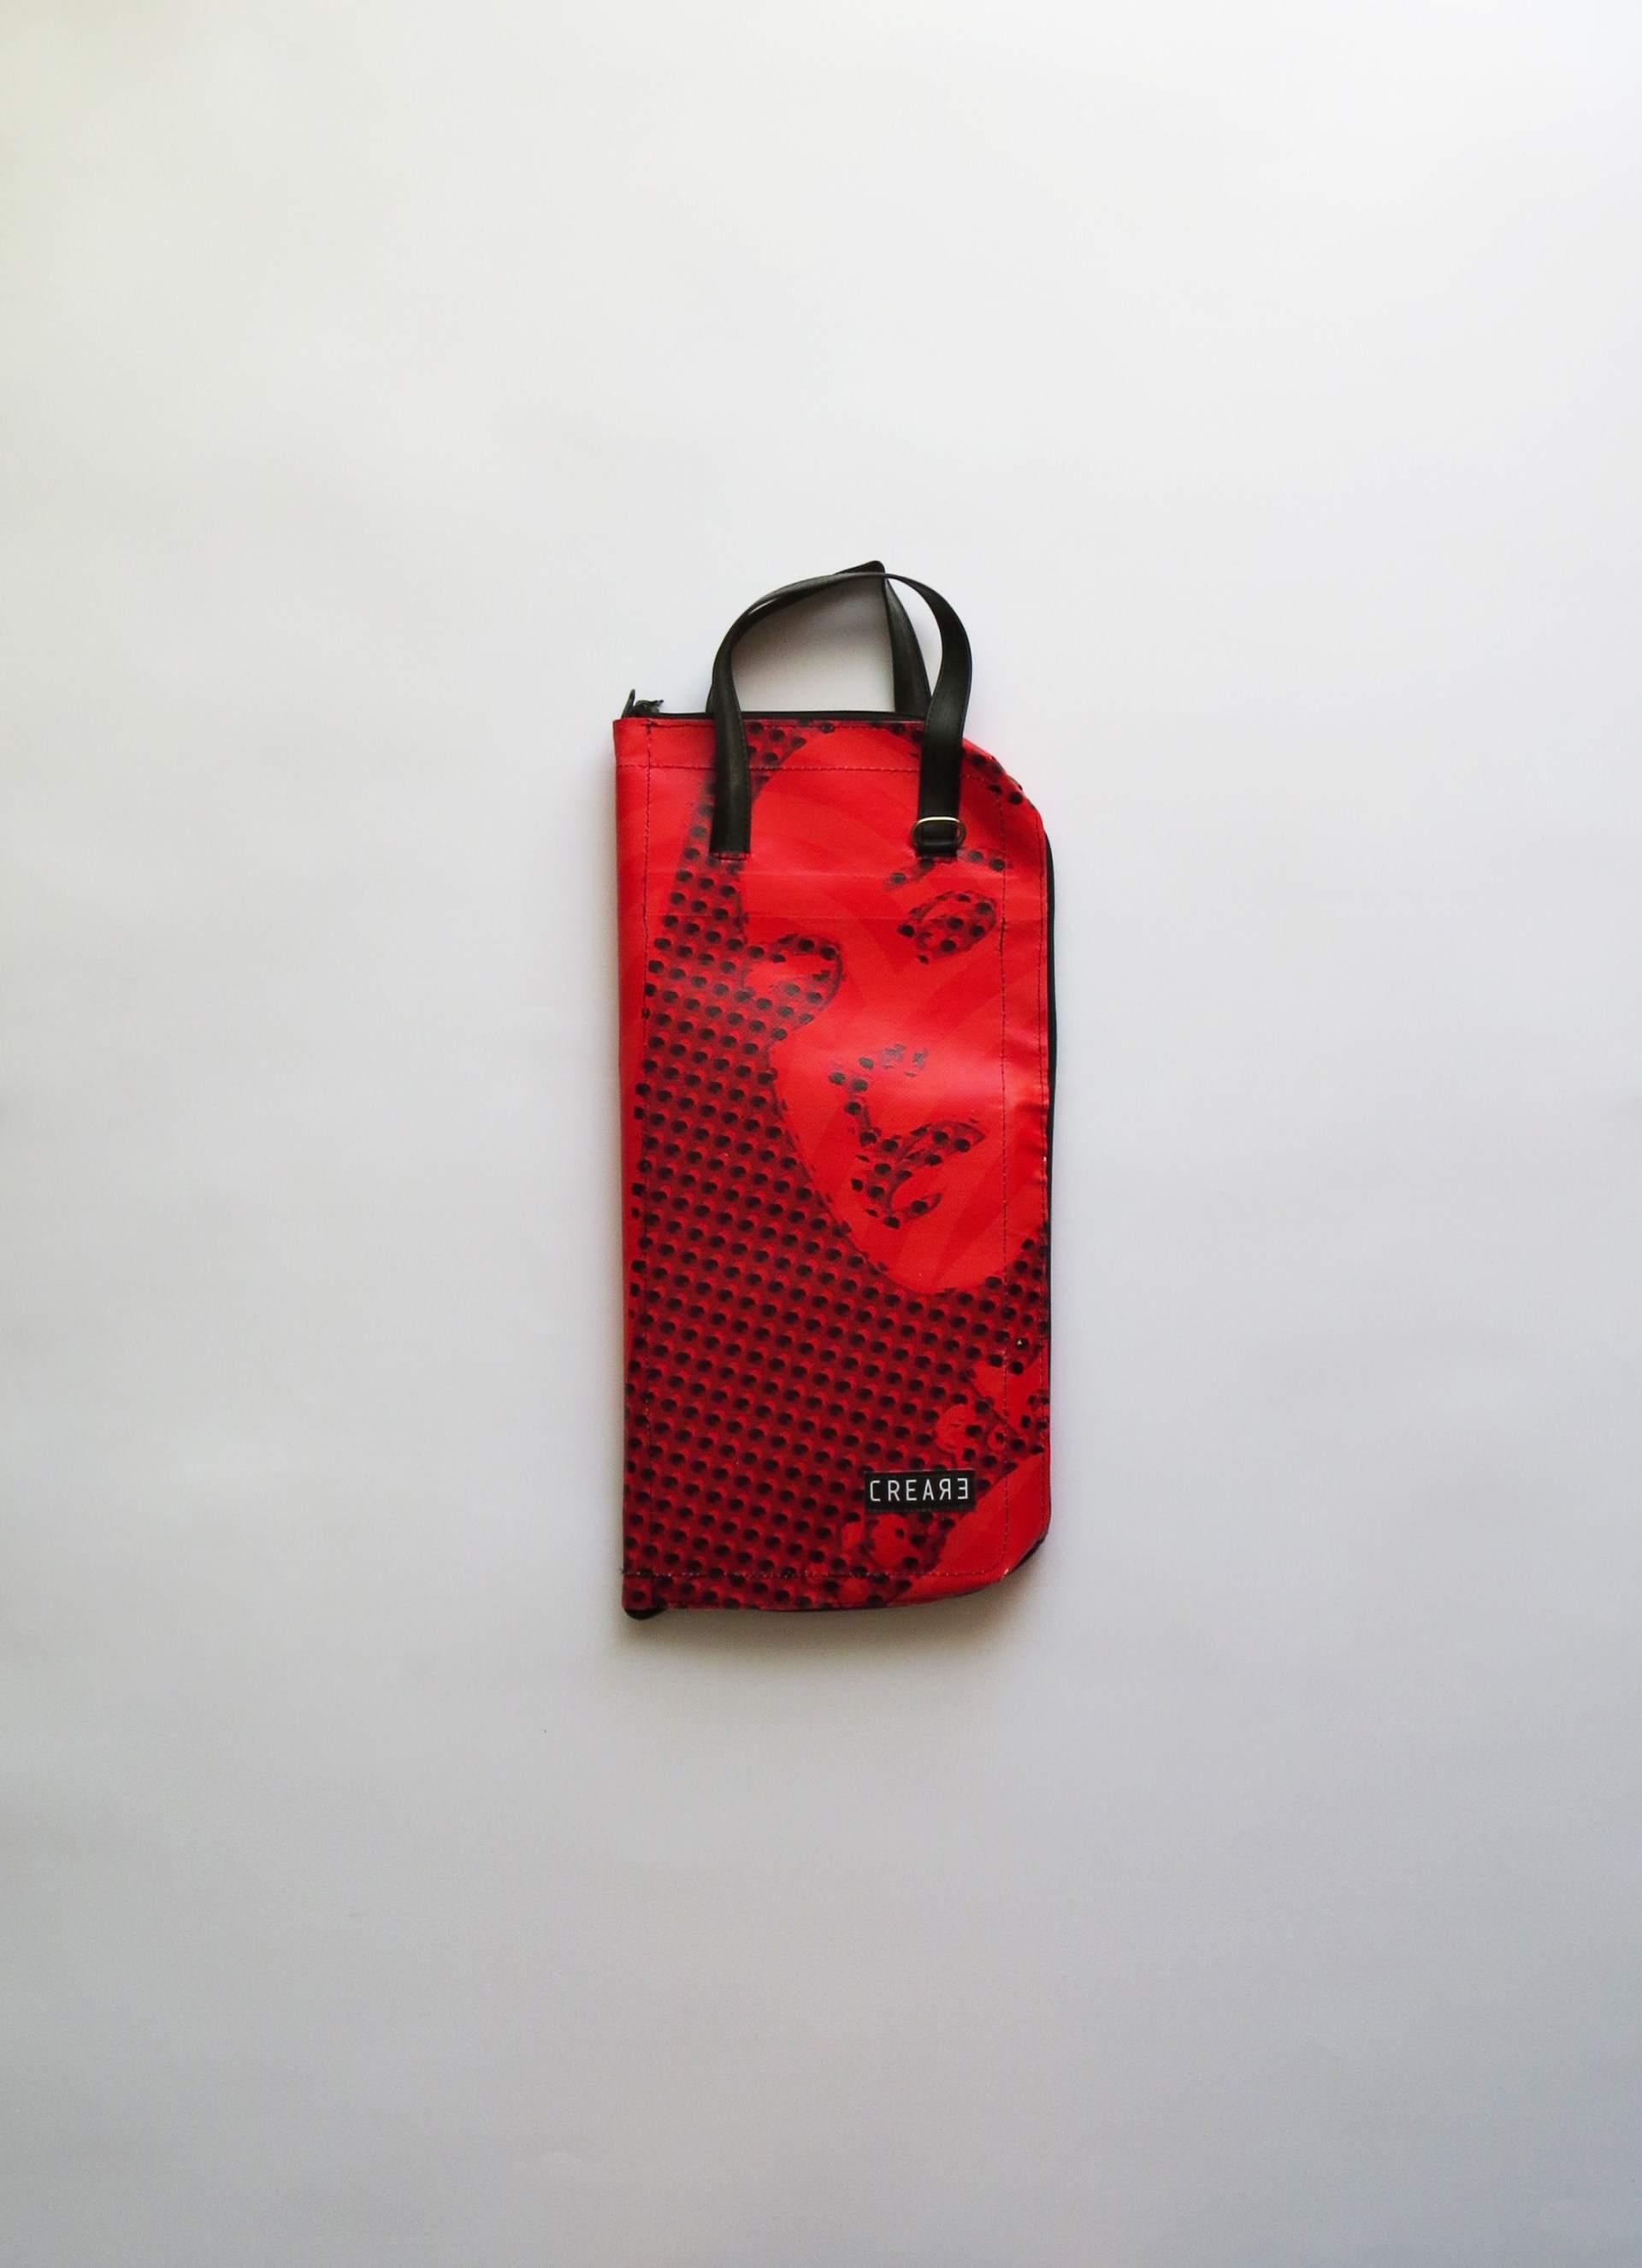 Eco handcrafted drumsticks bag rainproof musicbags.crea-re.com 2:23 front